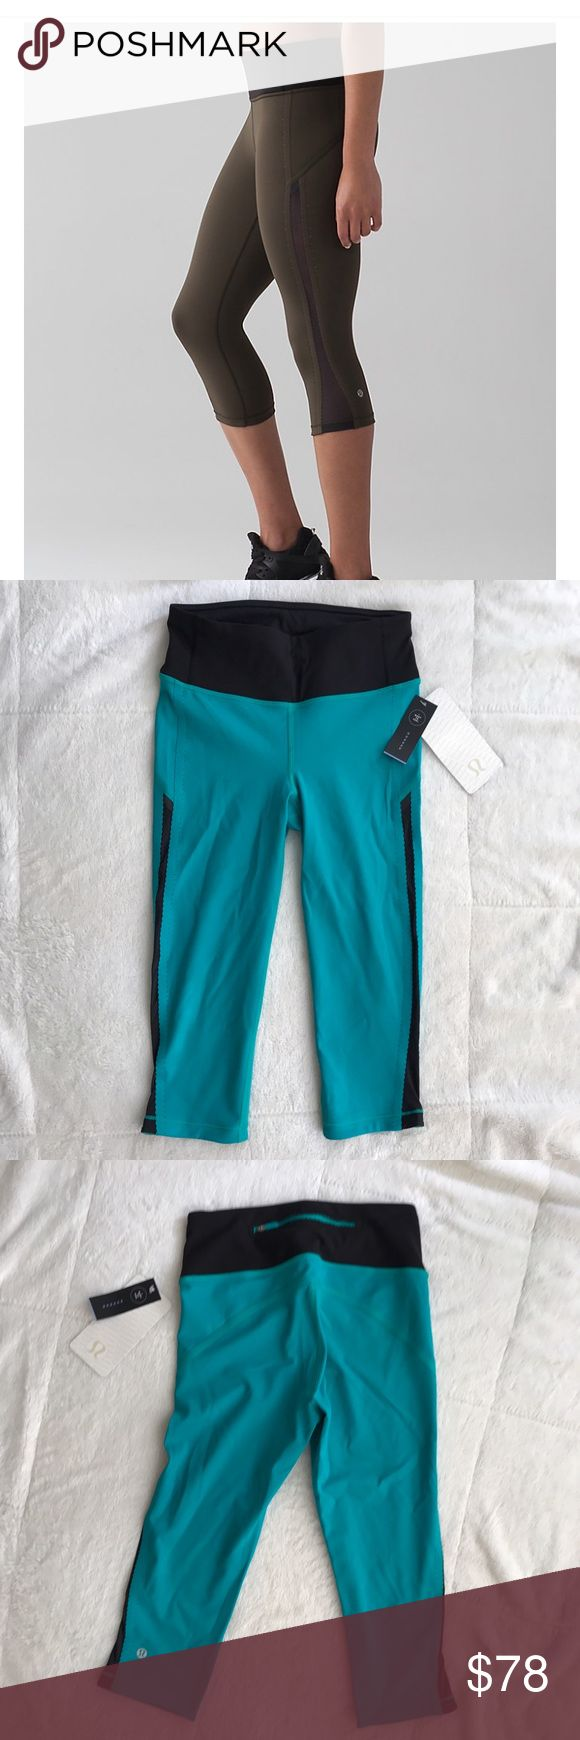 🌟JUSTADDED🌟Lululemon Smooth Stride Crop w/ Mesh! BRAND NEW Lululemon Smooth Stride Crop. Color: TURQUOISE GREEN + black (note: NOT olive like stock pic). MESH fabric paneling along the sides for ventilation. Cute back pocket with Lululemon emblem zipper pull! High rise fit. Offers accepted. lululemon athletica Pants Ankle & Cropped